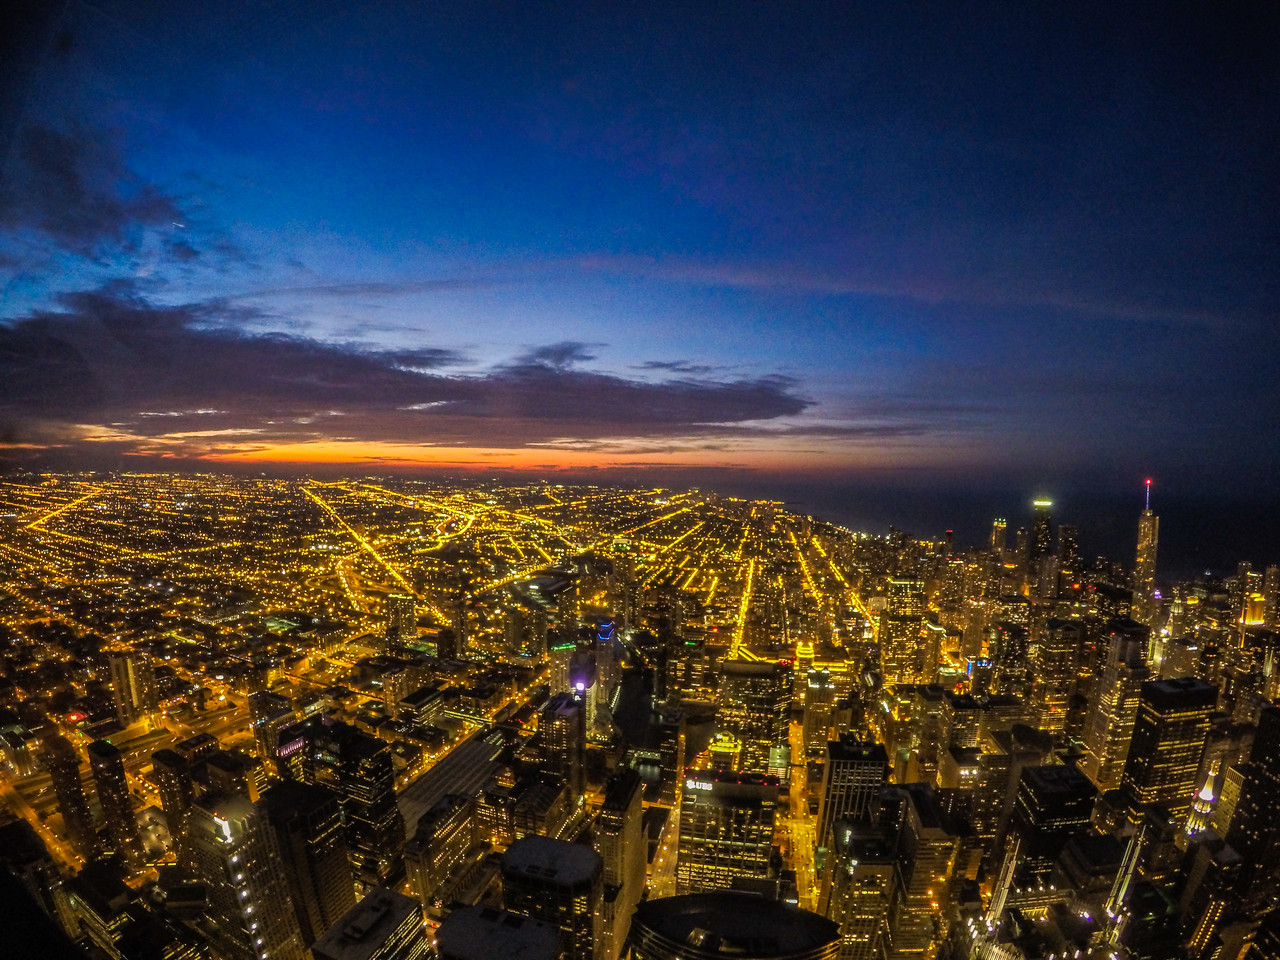 Skydeck Chicago Susnet July 27th, 2015